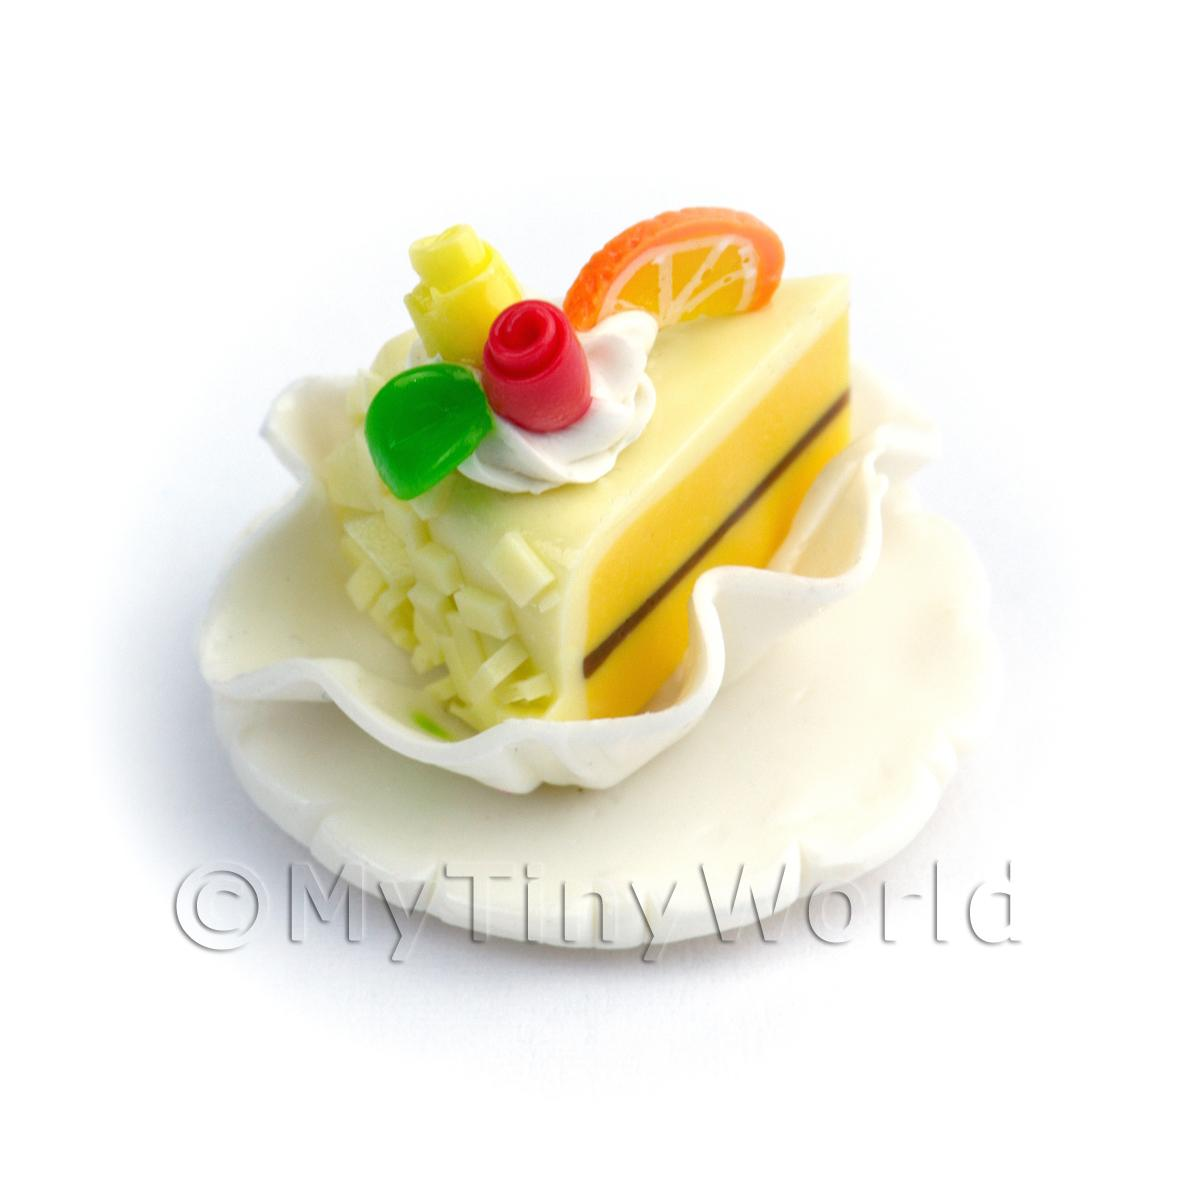 Miniature Pale Yellow Iced Individual Cake Slice On A Clay Plate